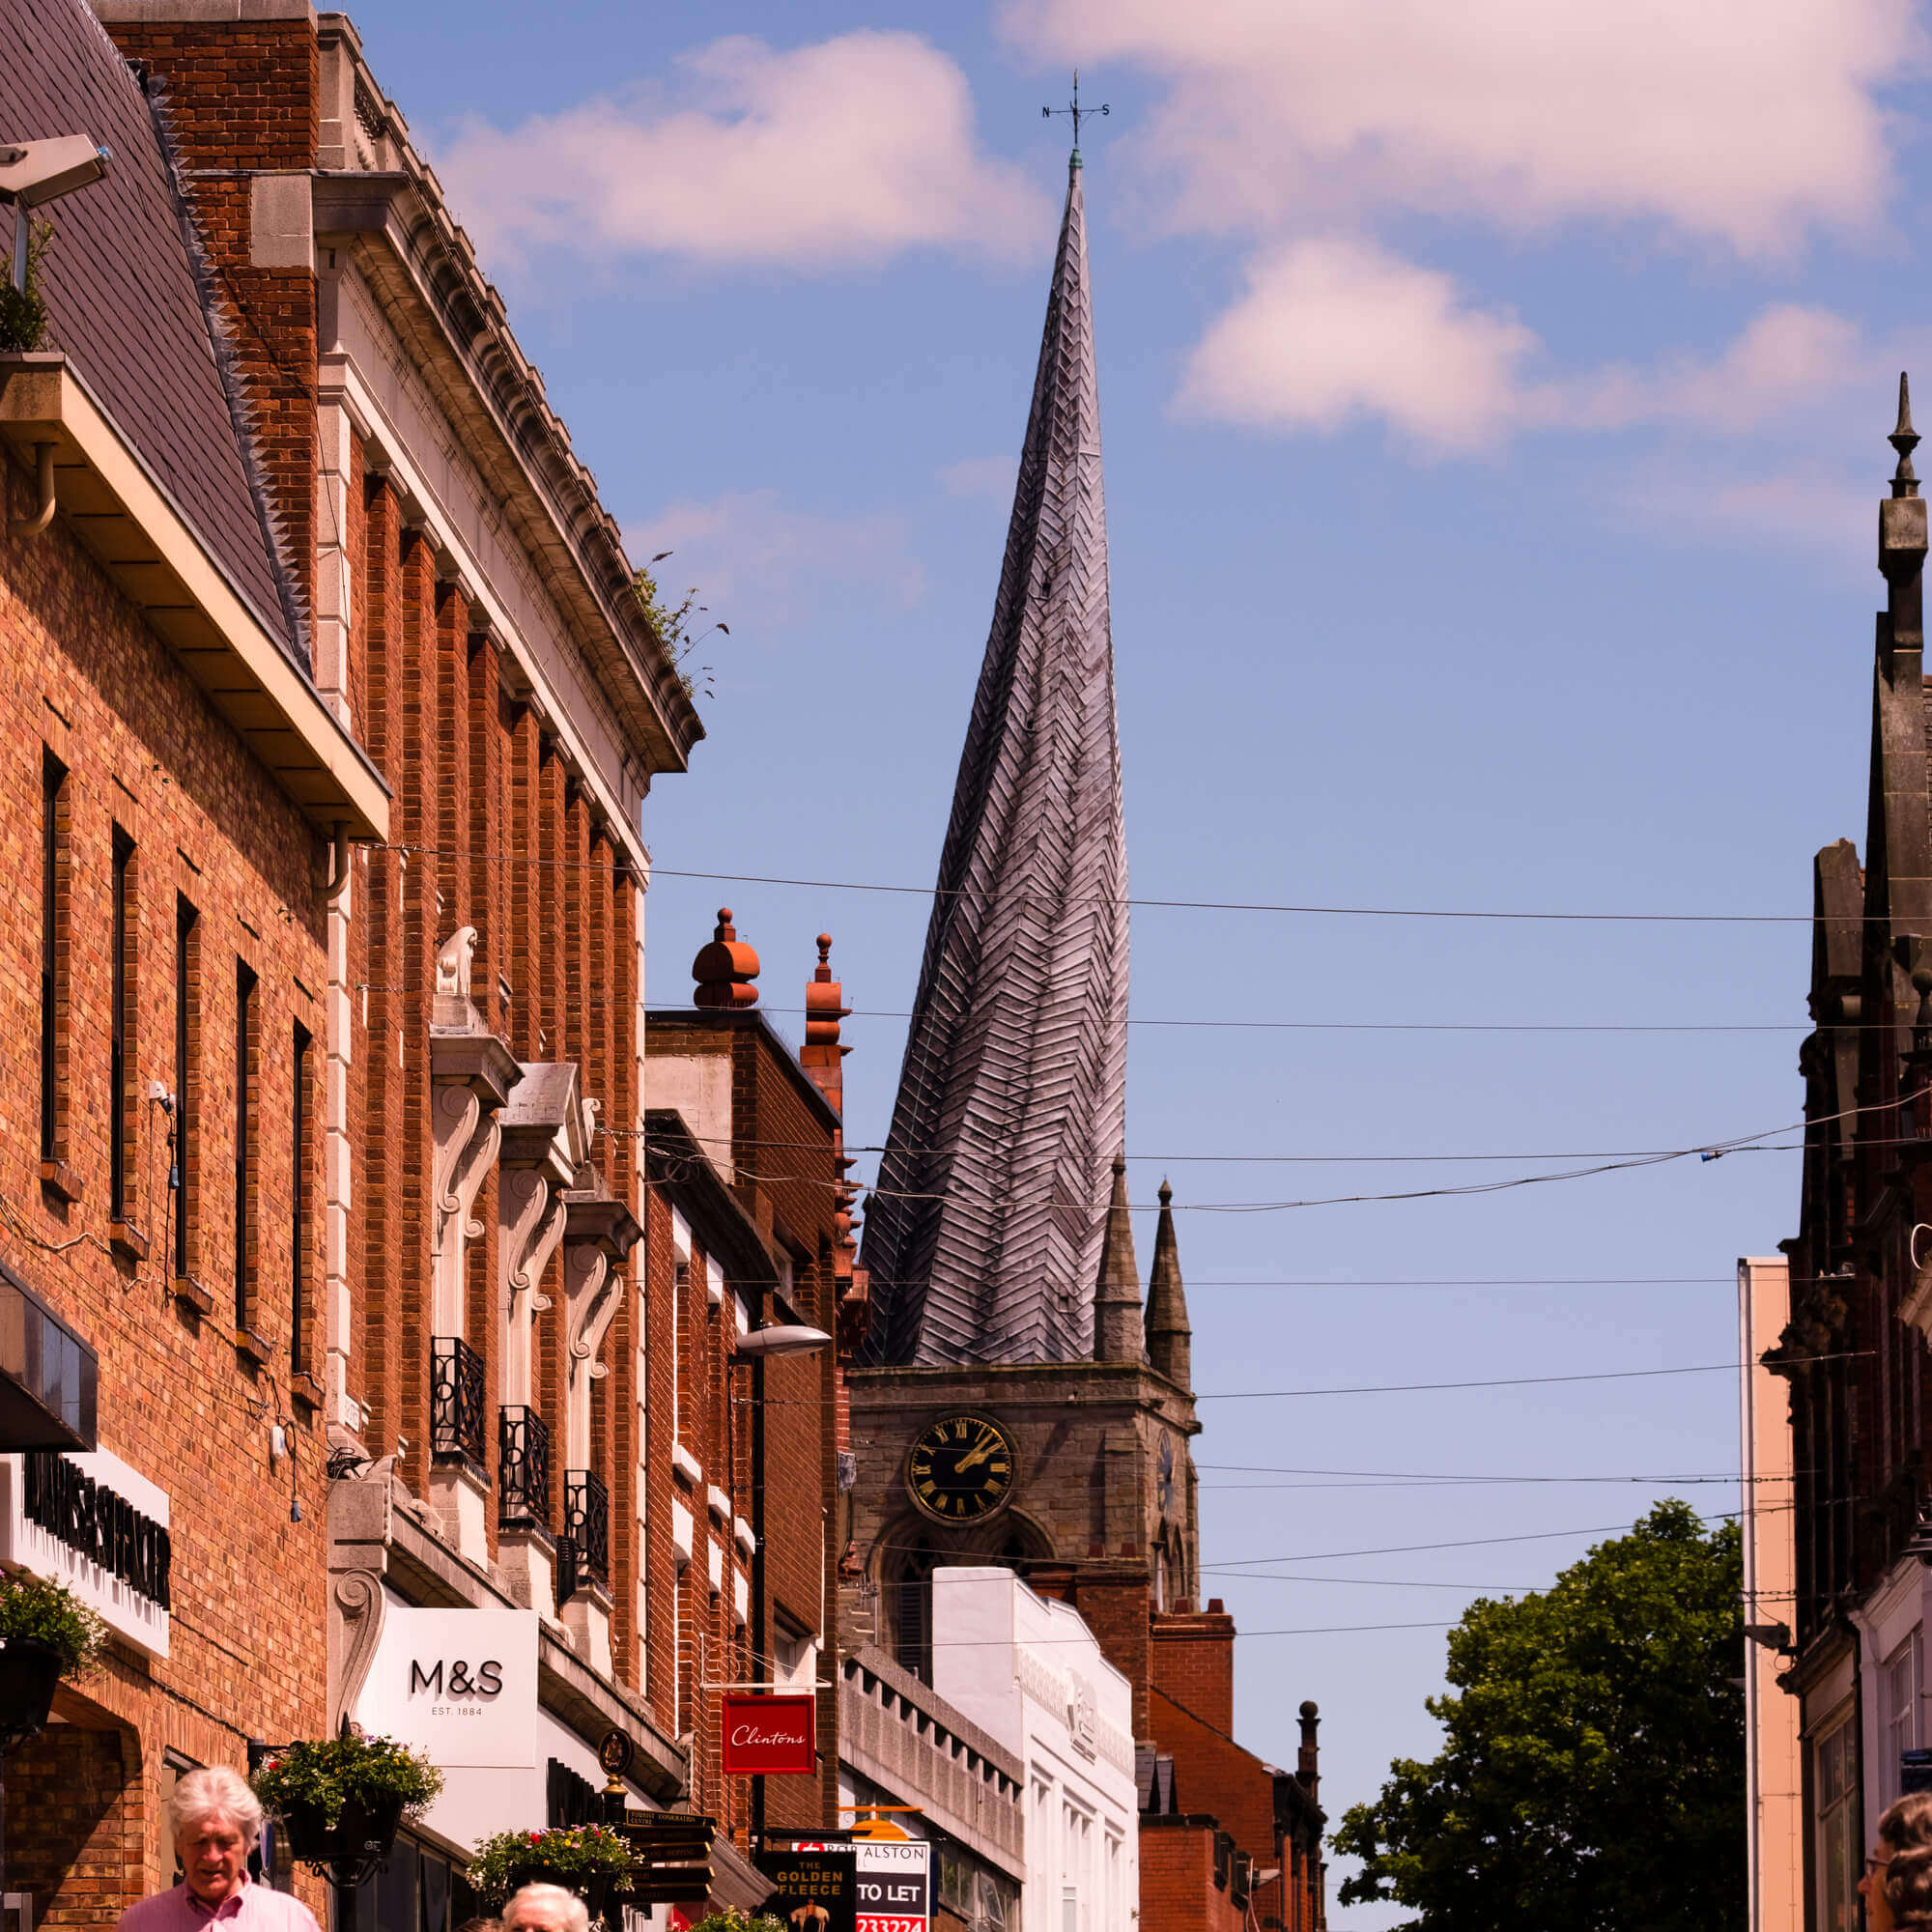 Chesterfield town scape